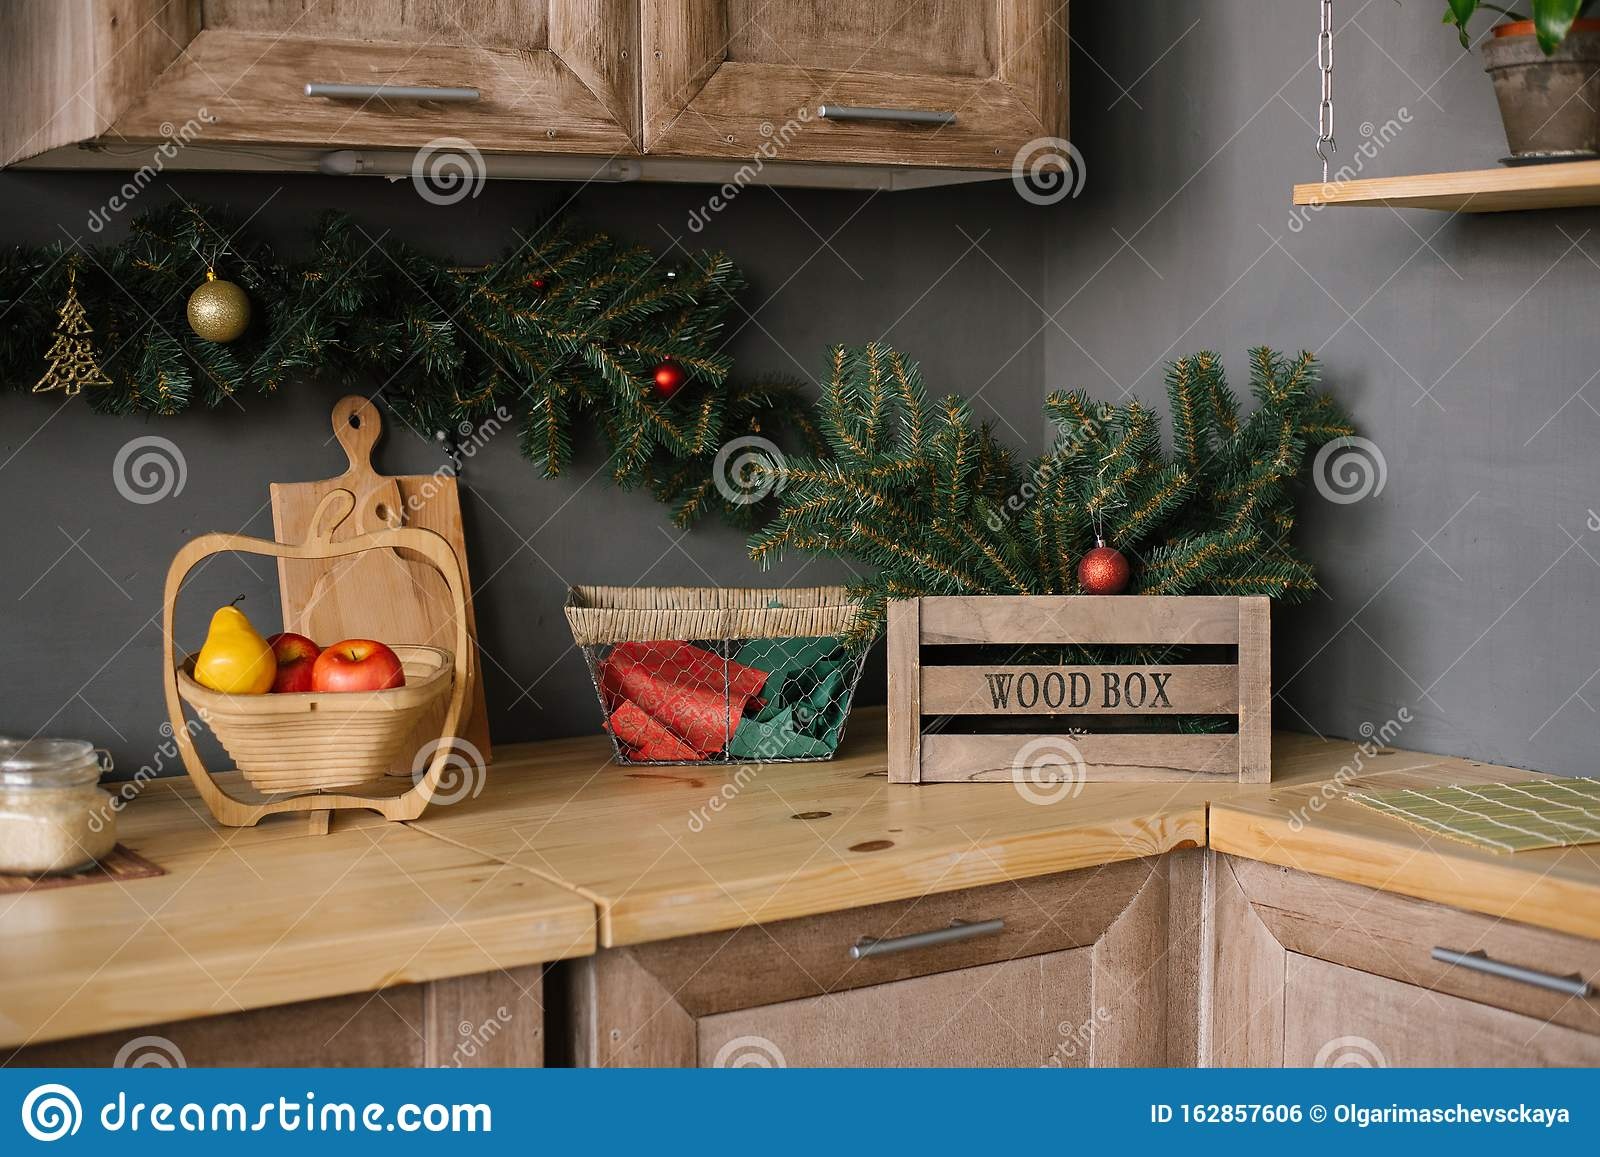 Kitchen Utensils And Accessories In The Kitchen Decorated For Christmas Stock Photo Image Of Furniture Light 162857606